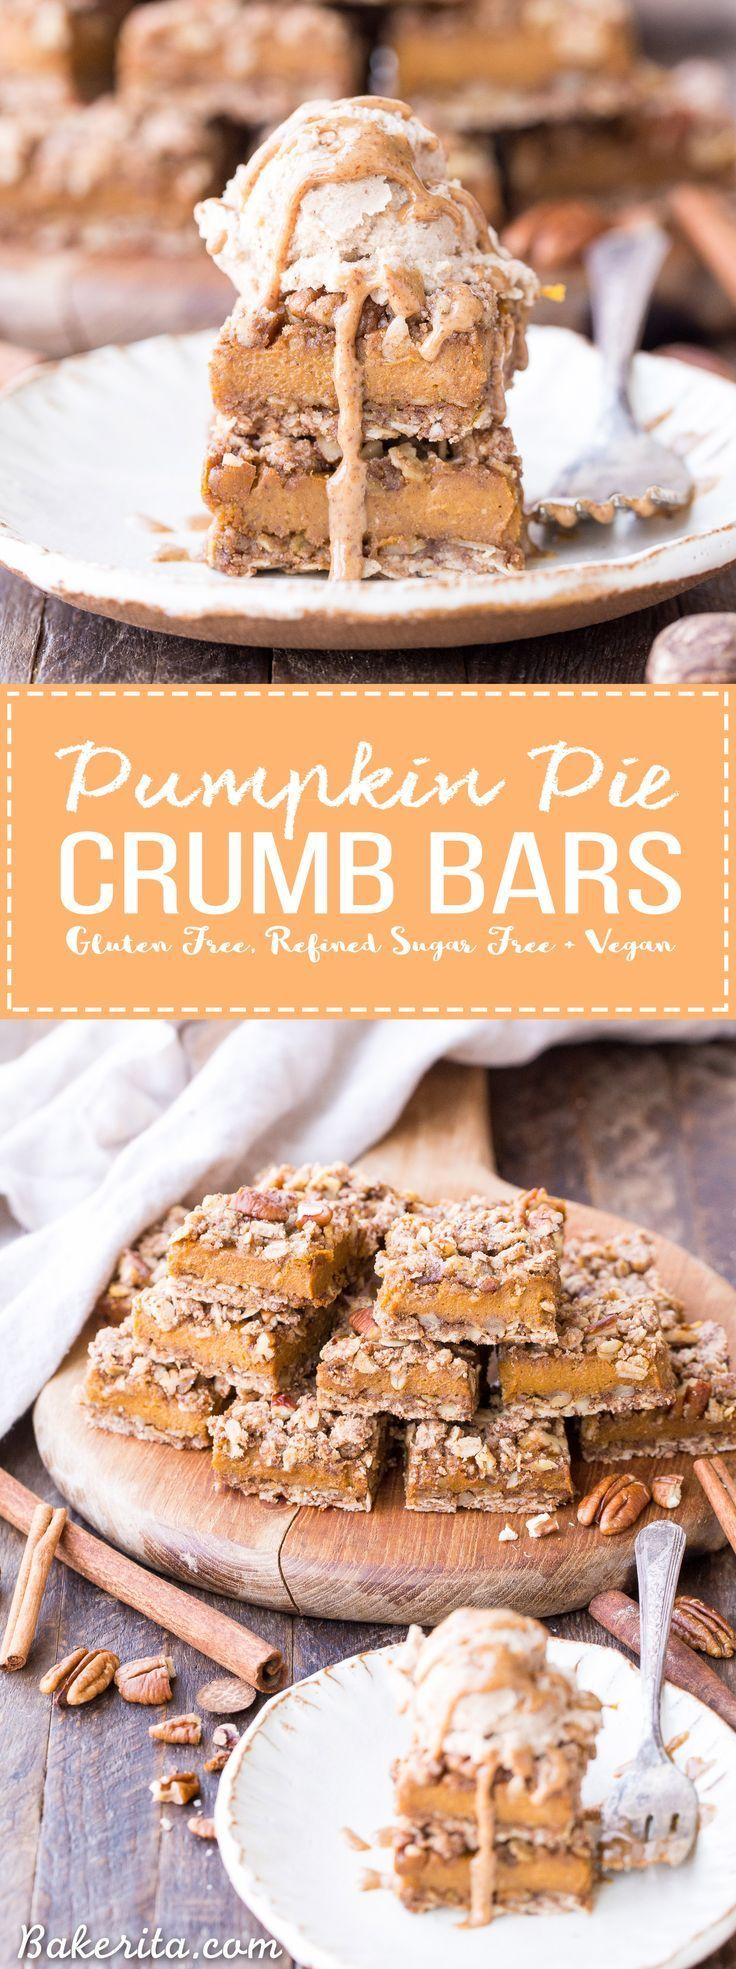 These Pumpkin Pie Crumb Bars have an oatmeal crust and crumble with a smooth and sweet pumpkin pie filling! You'll go nuts for this gluten-free, refined sugar-free and vegan portable pumpkin pie.